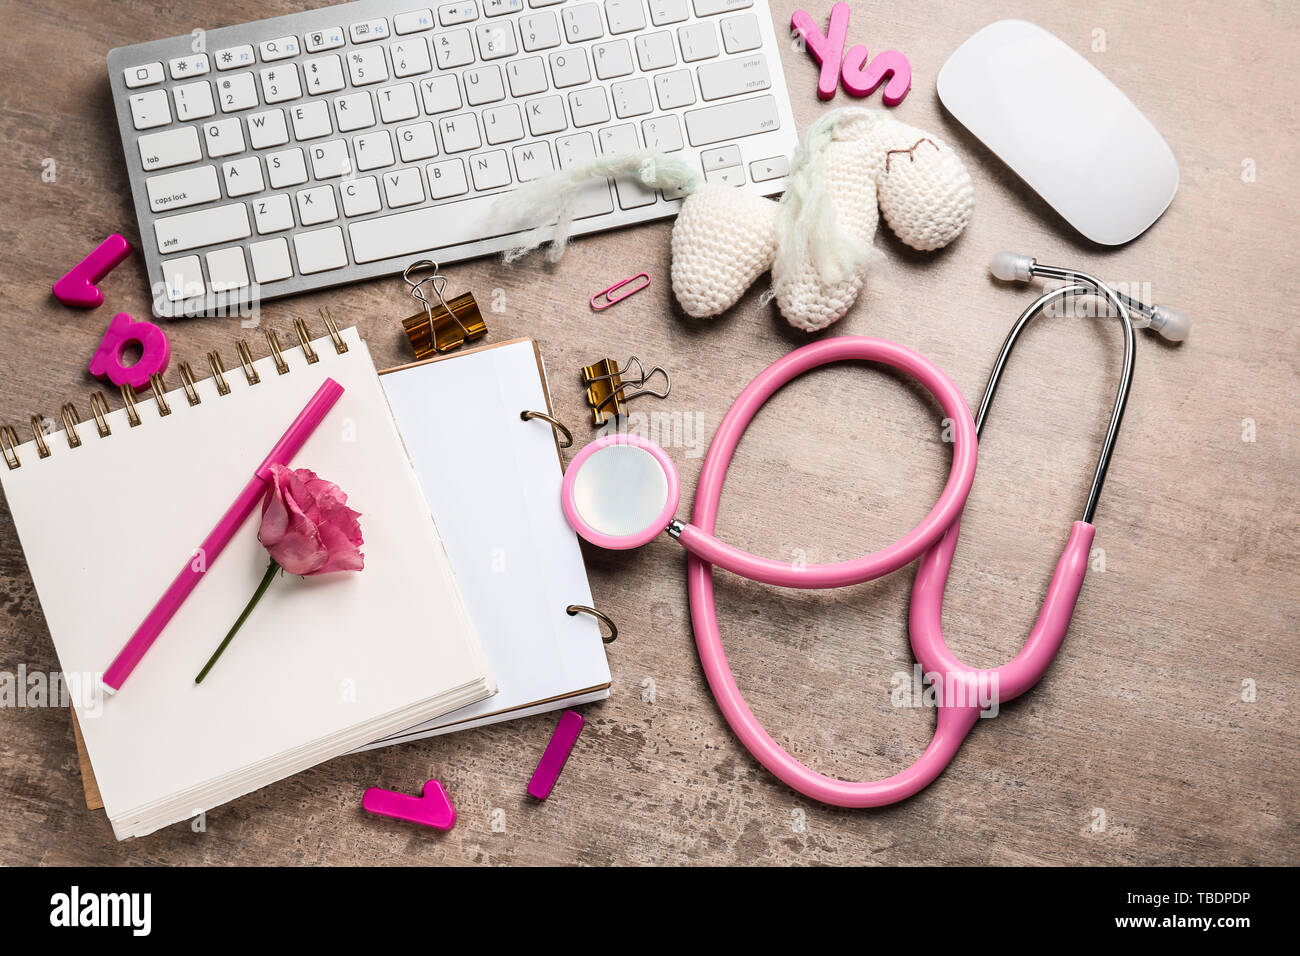 PC keyboard, stethoscope, stationery and toy on wooden background - Stock Image